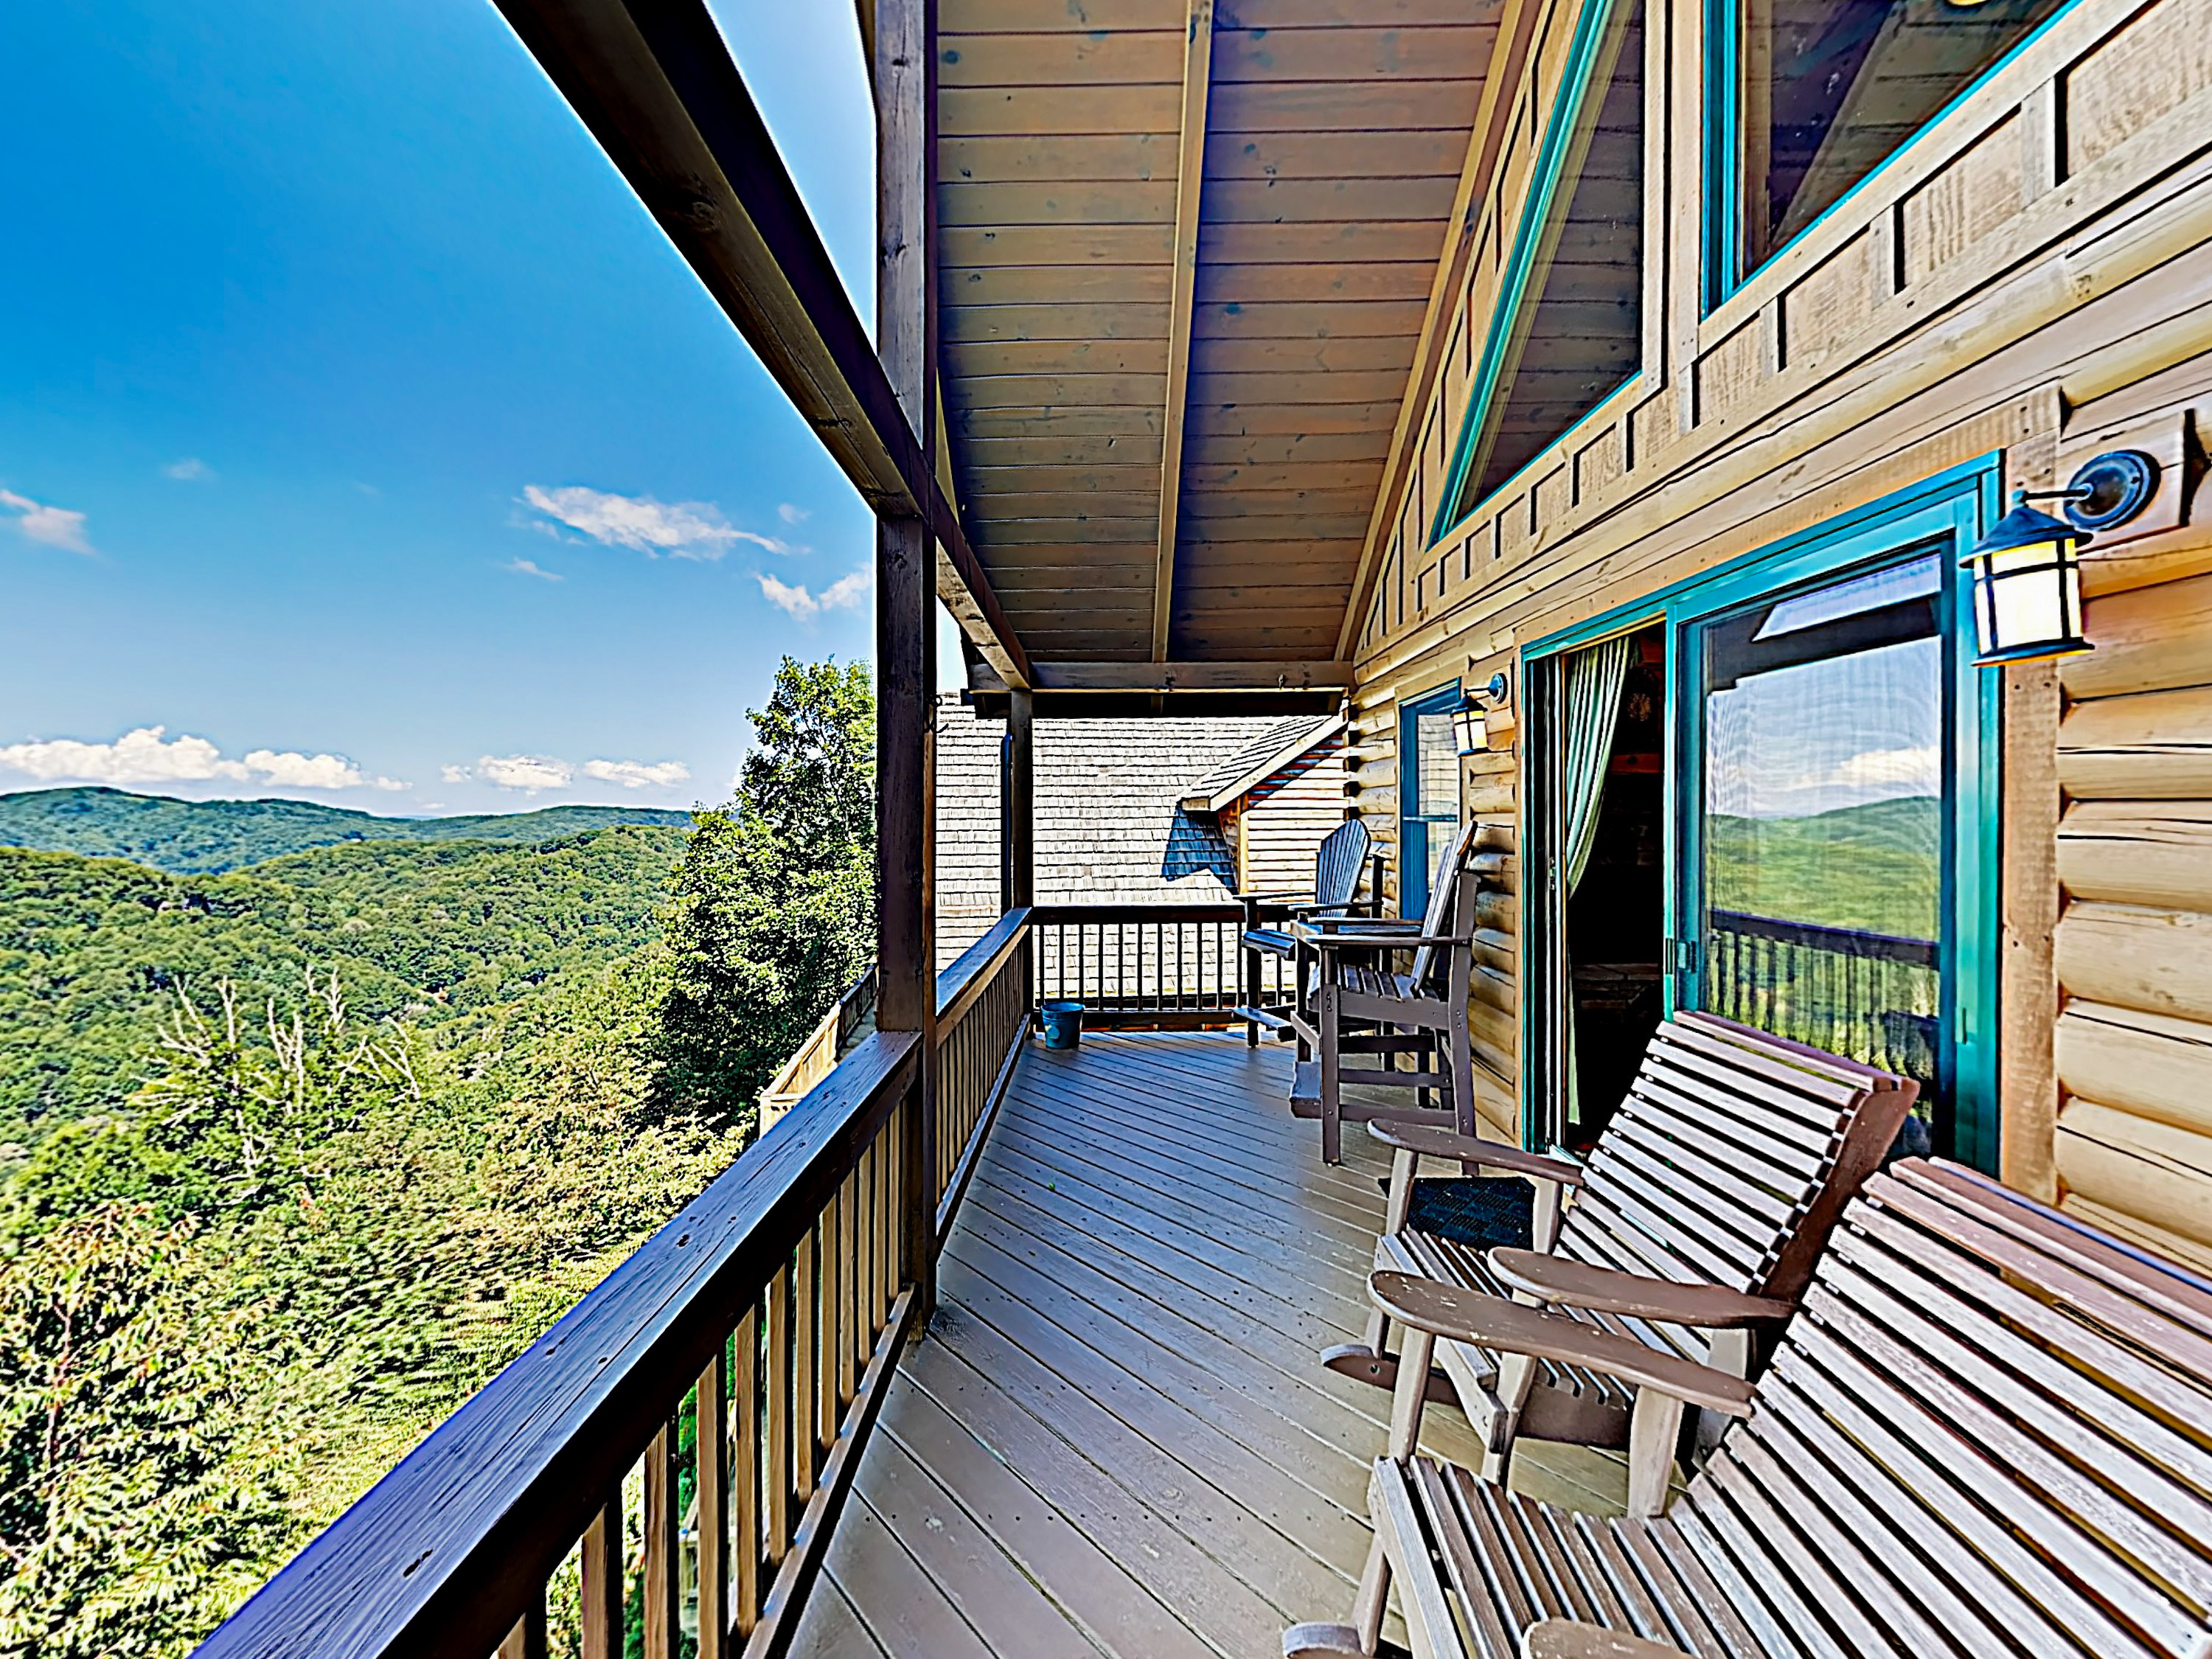 Mars Hill NC Vacation Rental Welcome to Mars